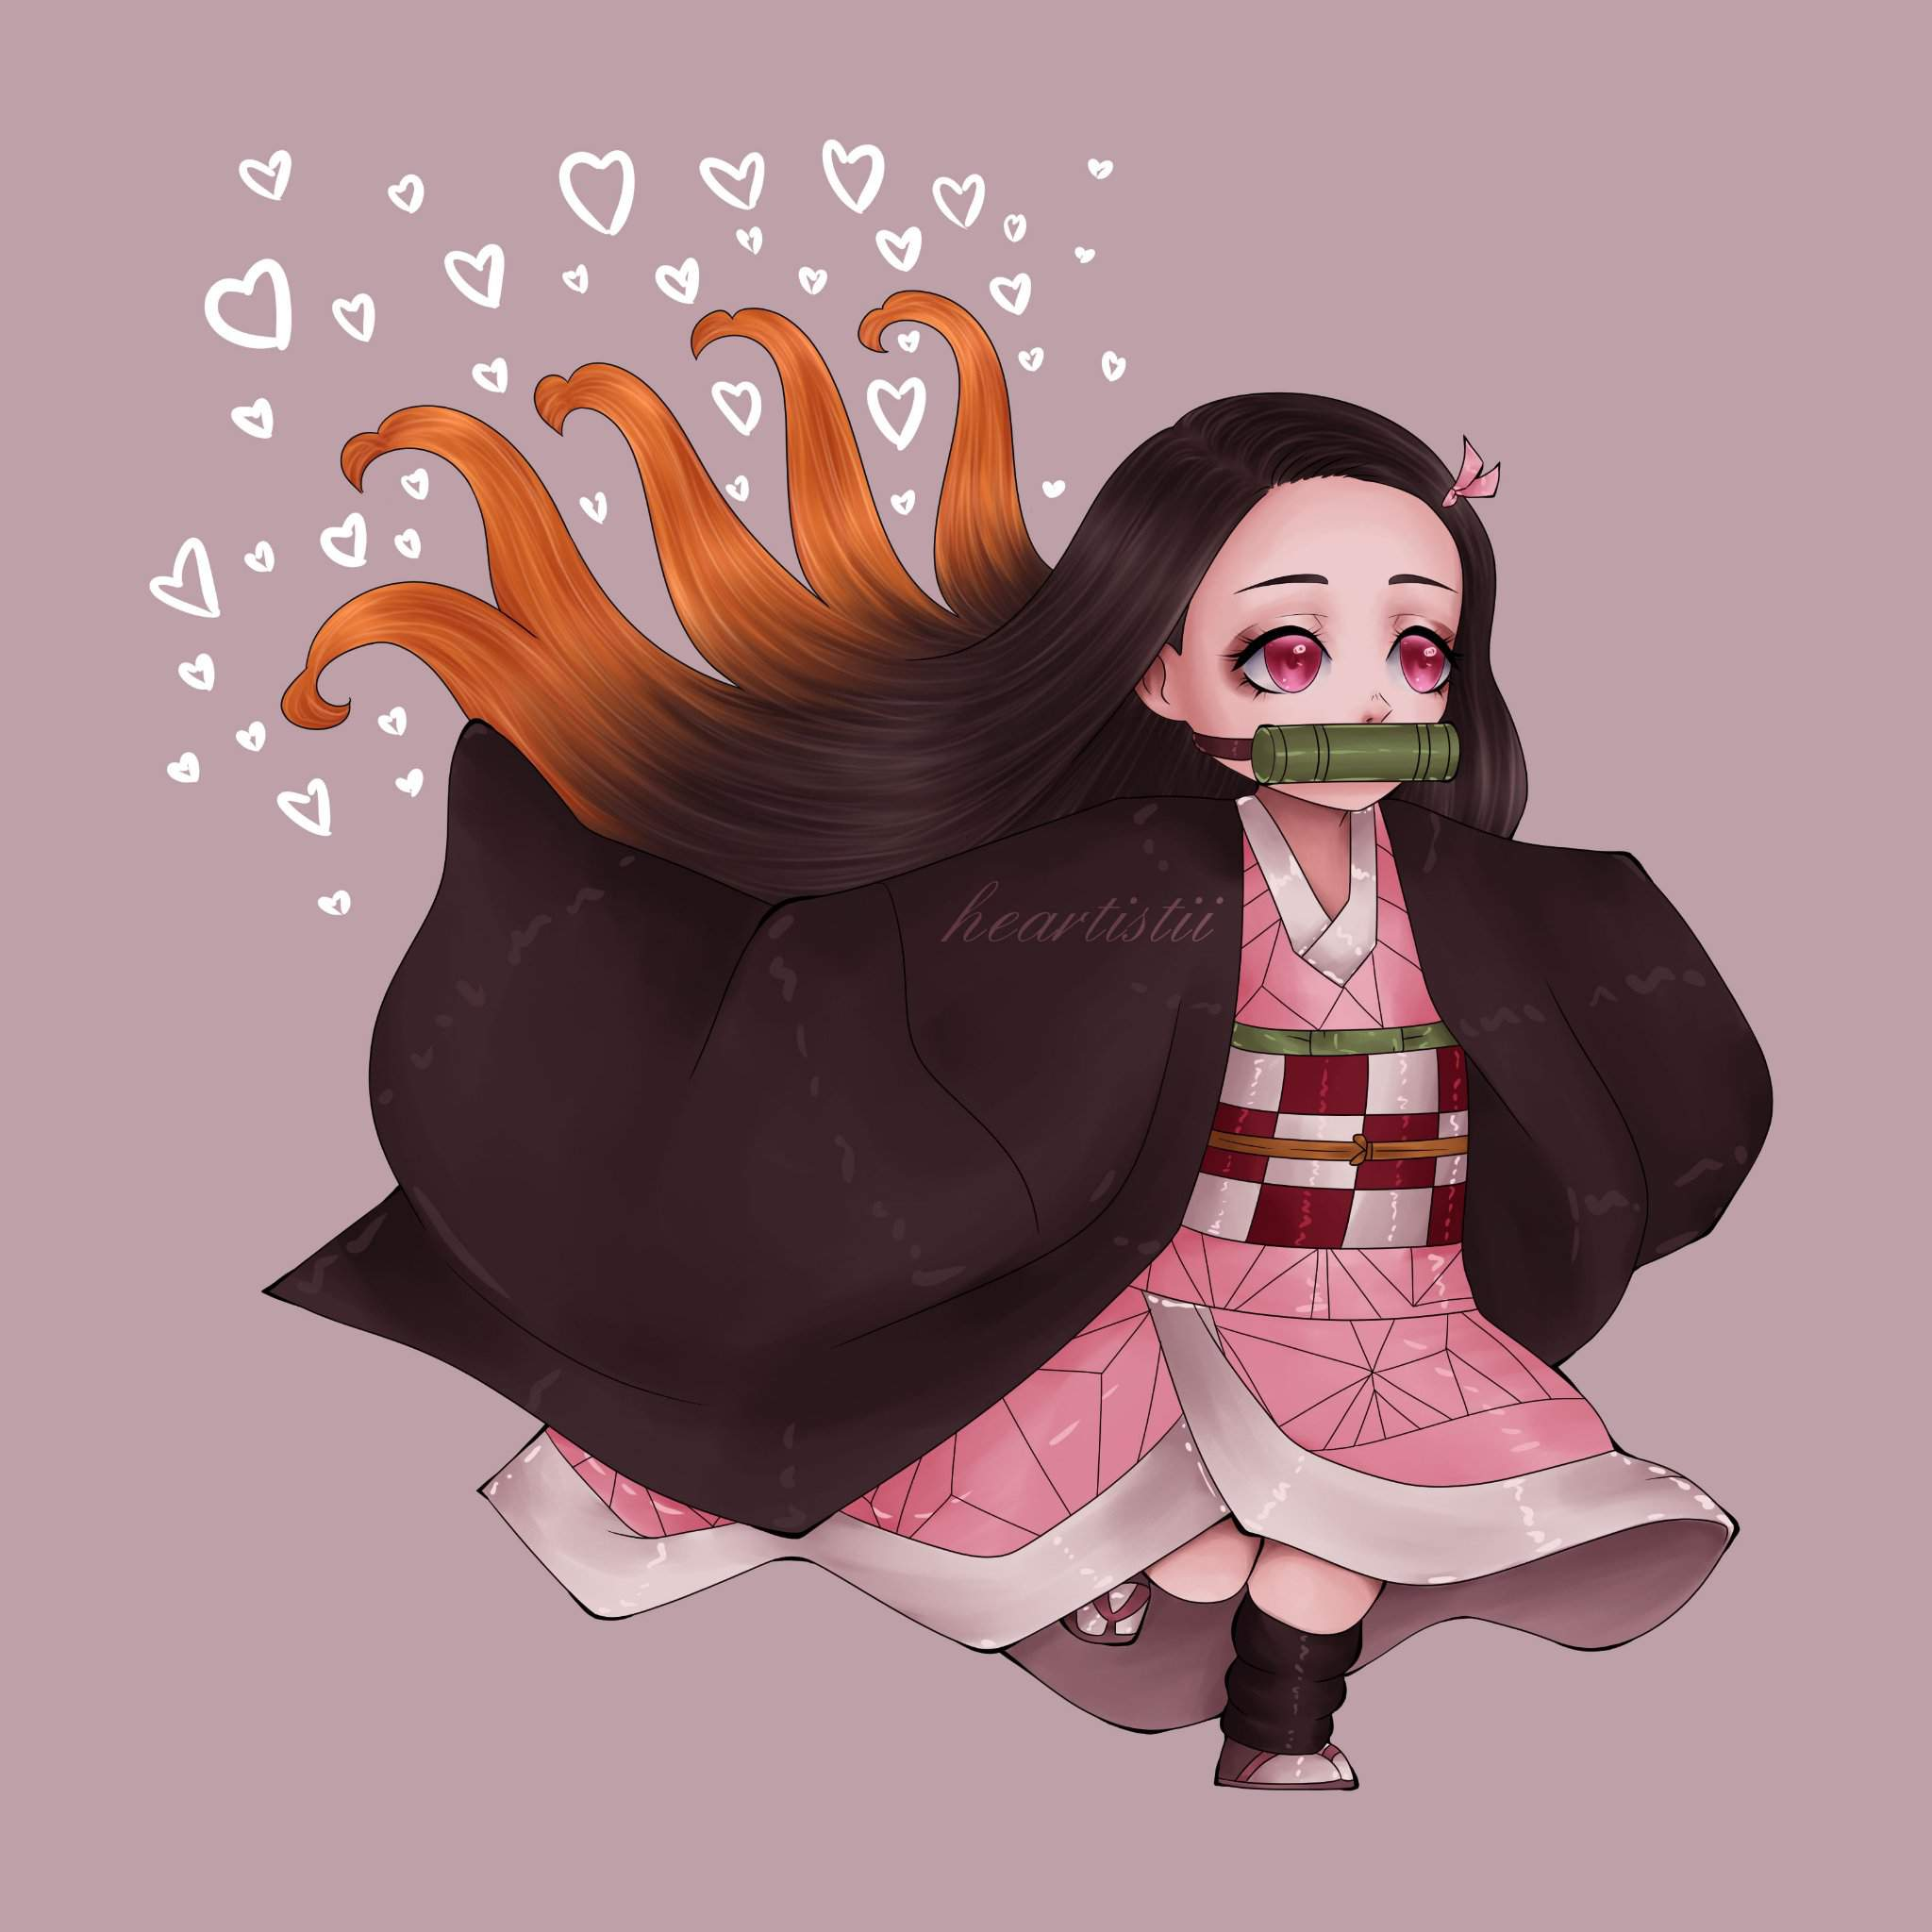 Running Smol Nezuko 1 Nezuko Know Your Meme